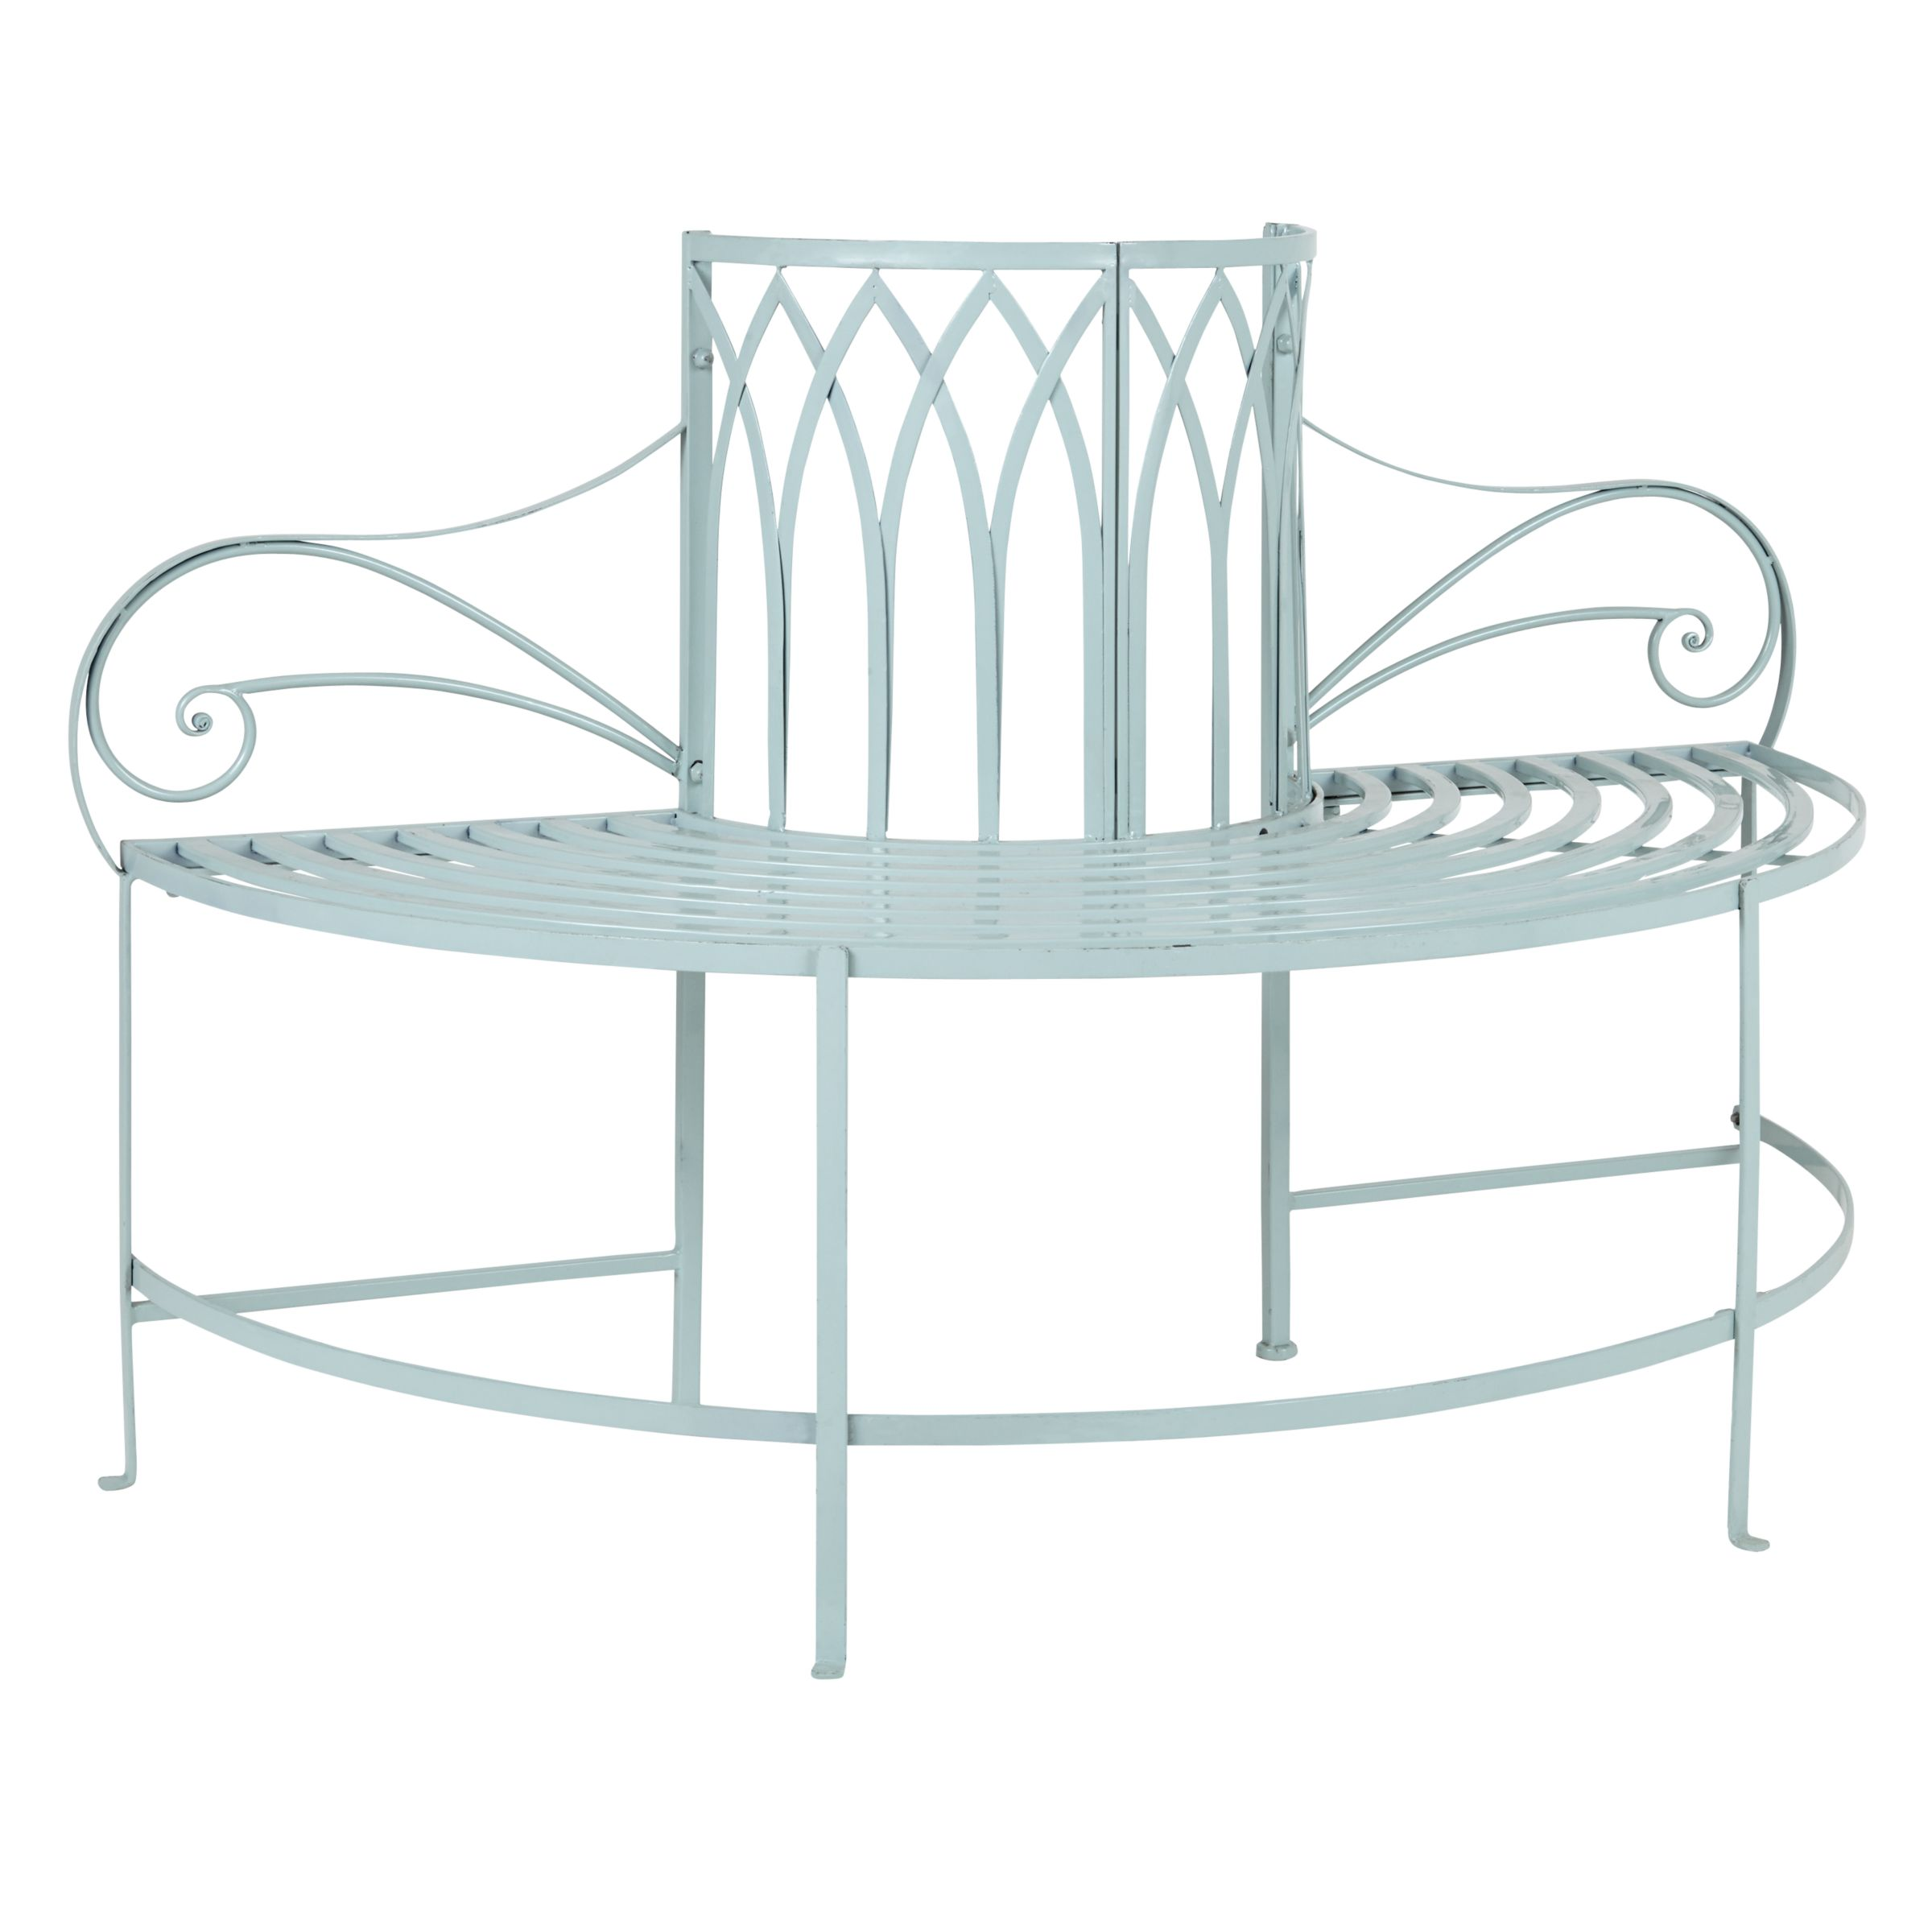 Buy Cheap Round Tree Bench Compare Sheds Garden Furniture Prices For Best Uk Deals